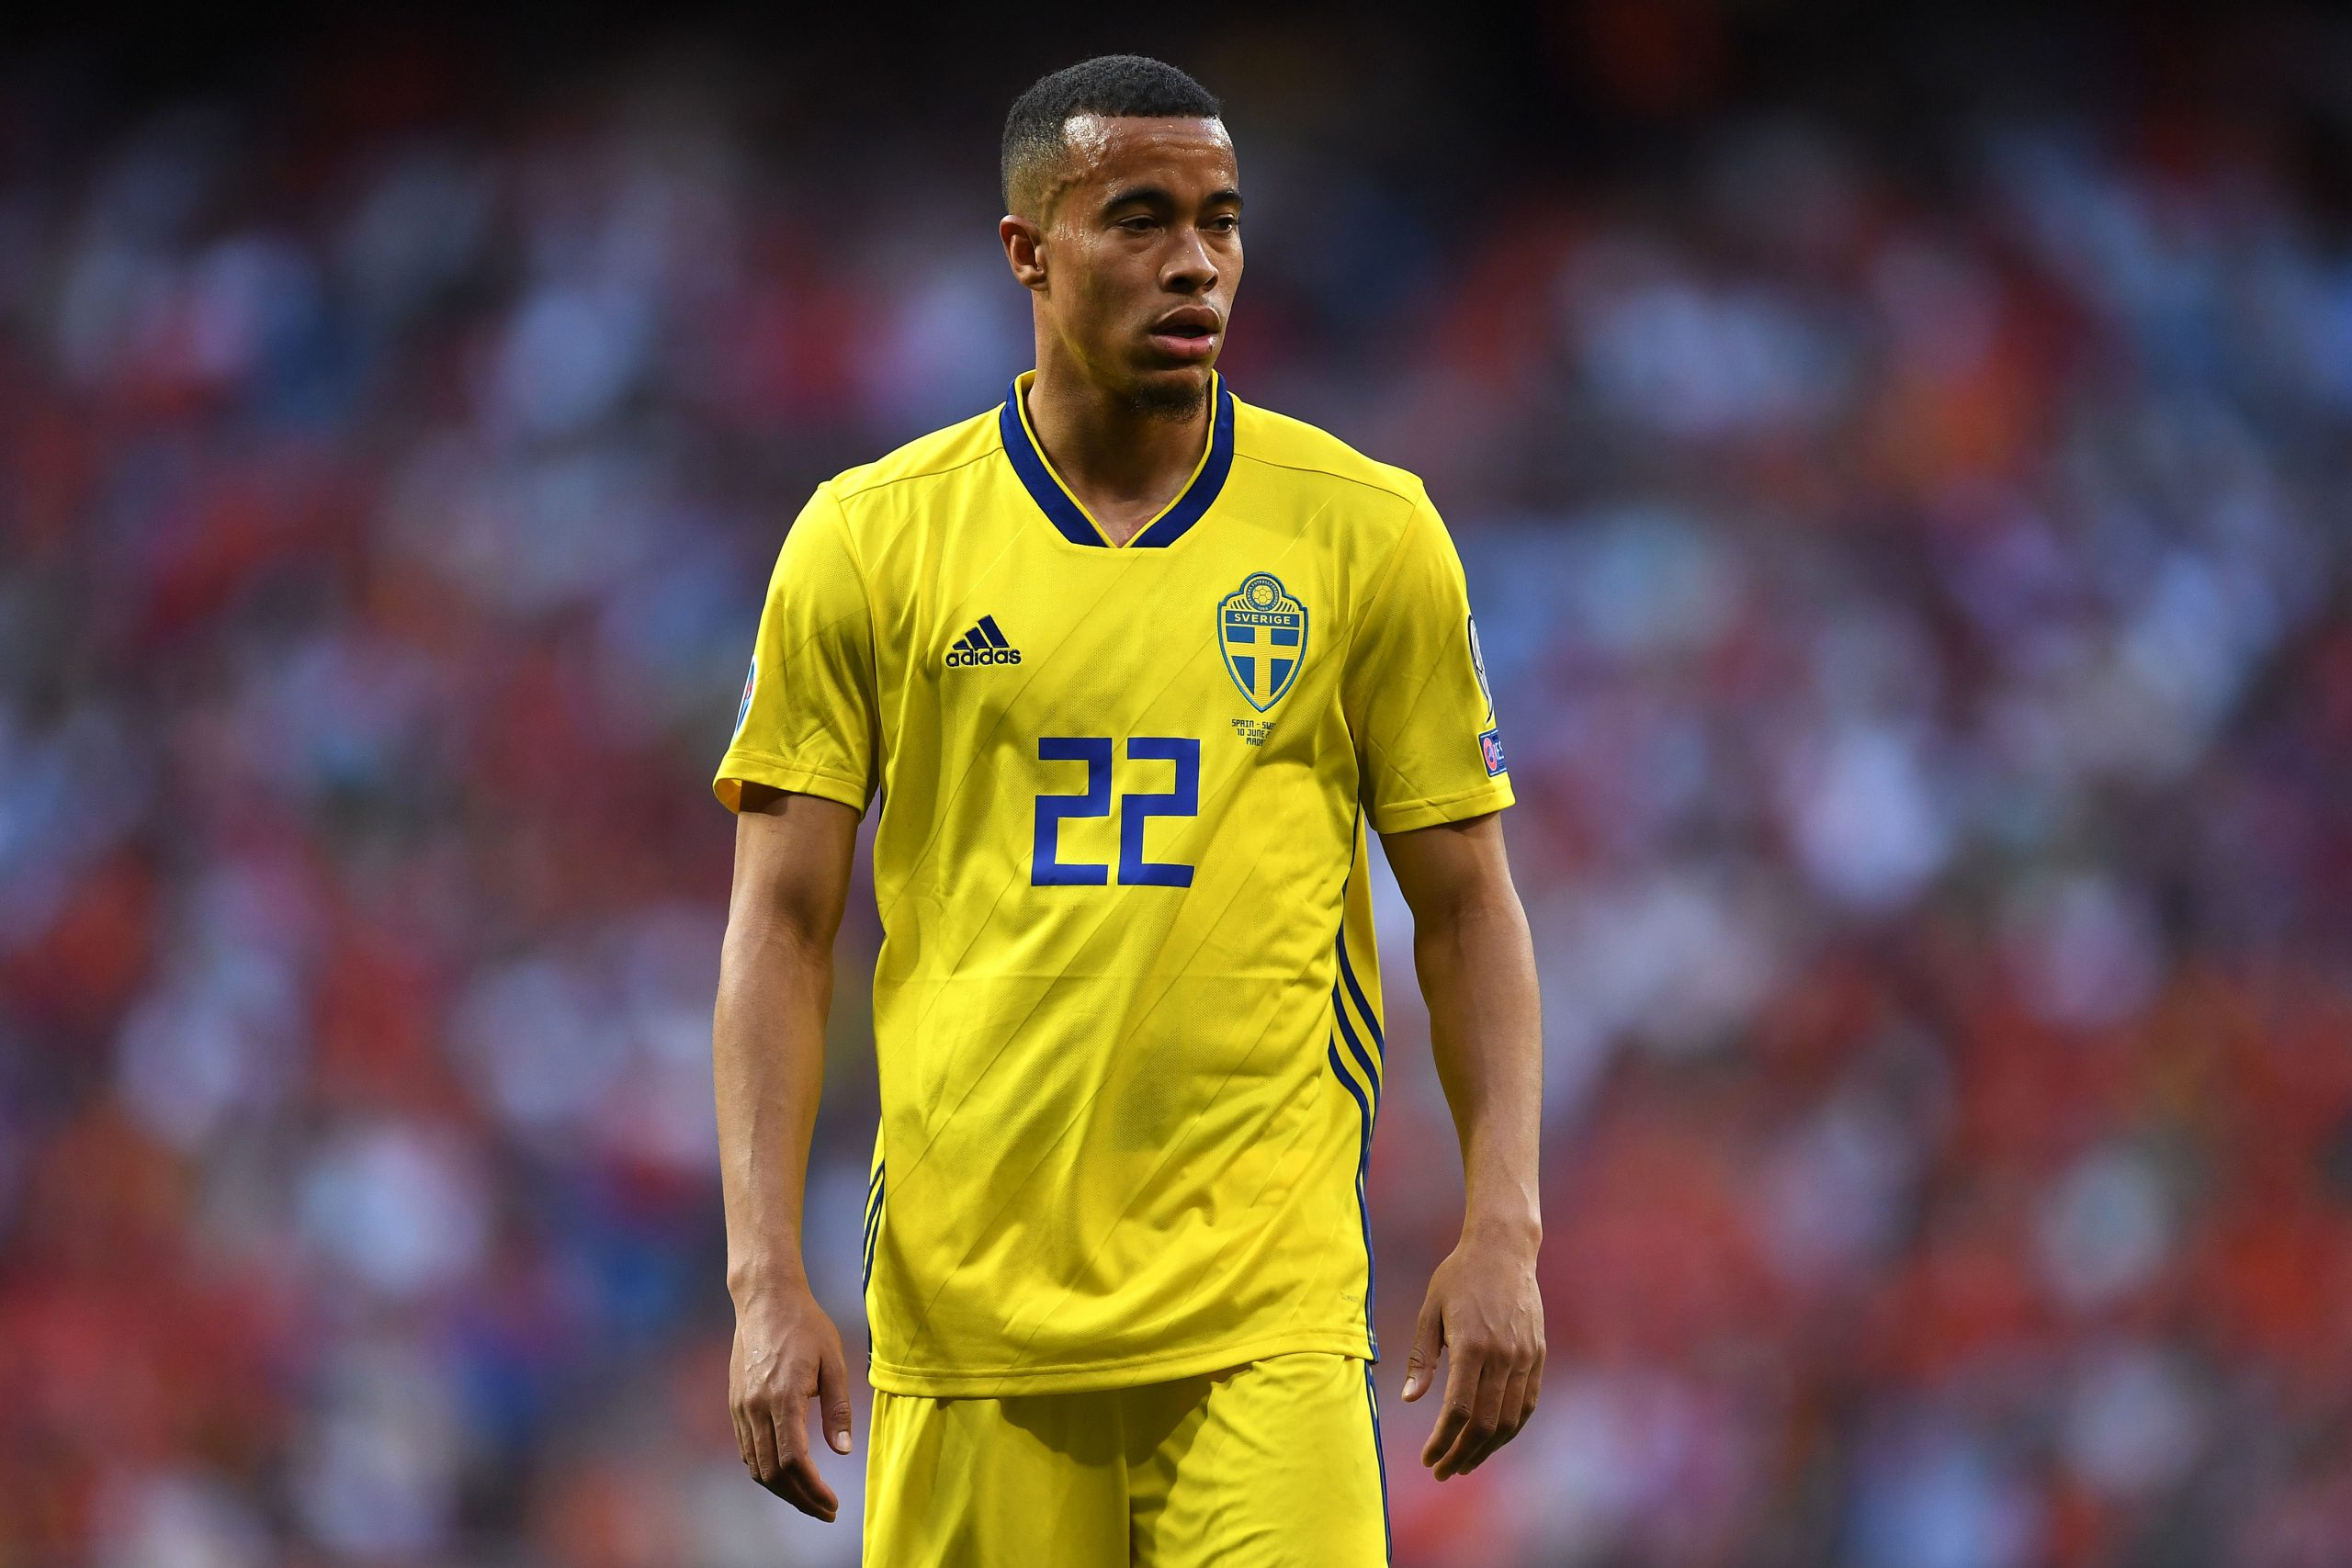 Quaison has been impressive for the Swedish national team (Getty Images)